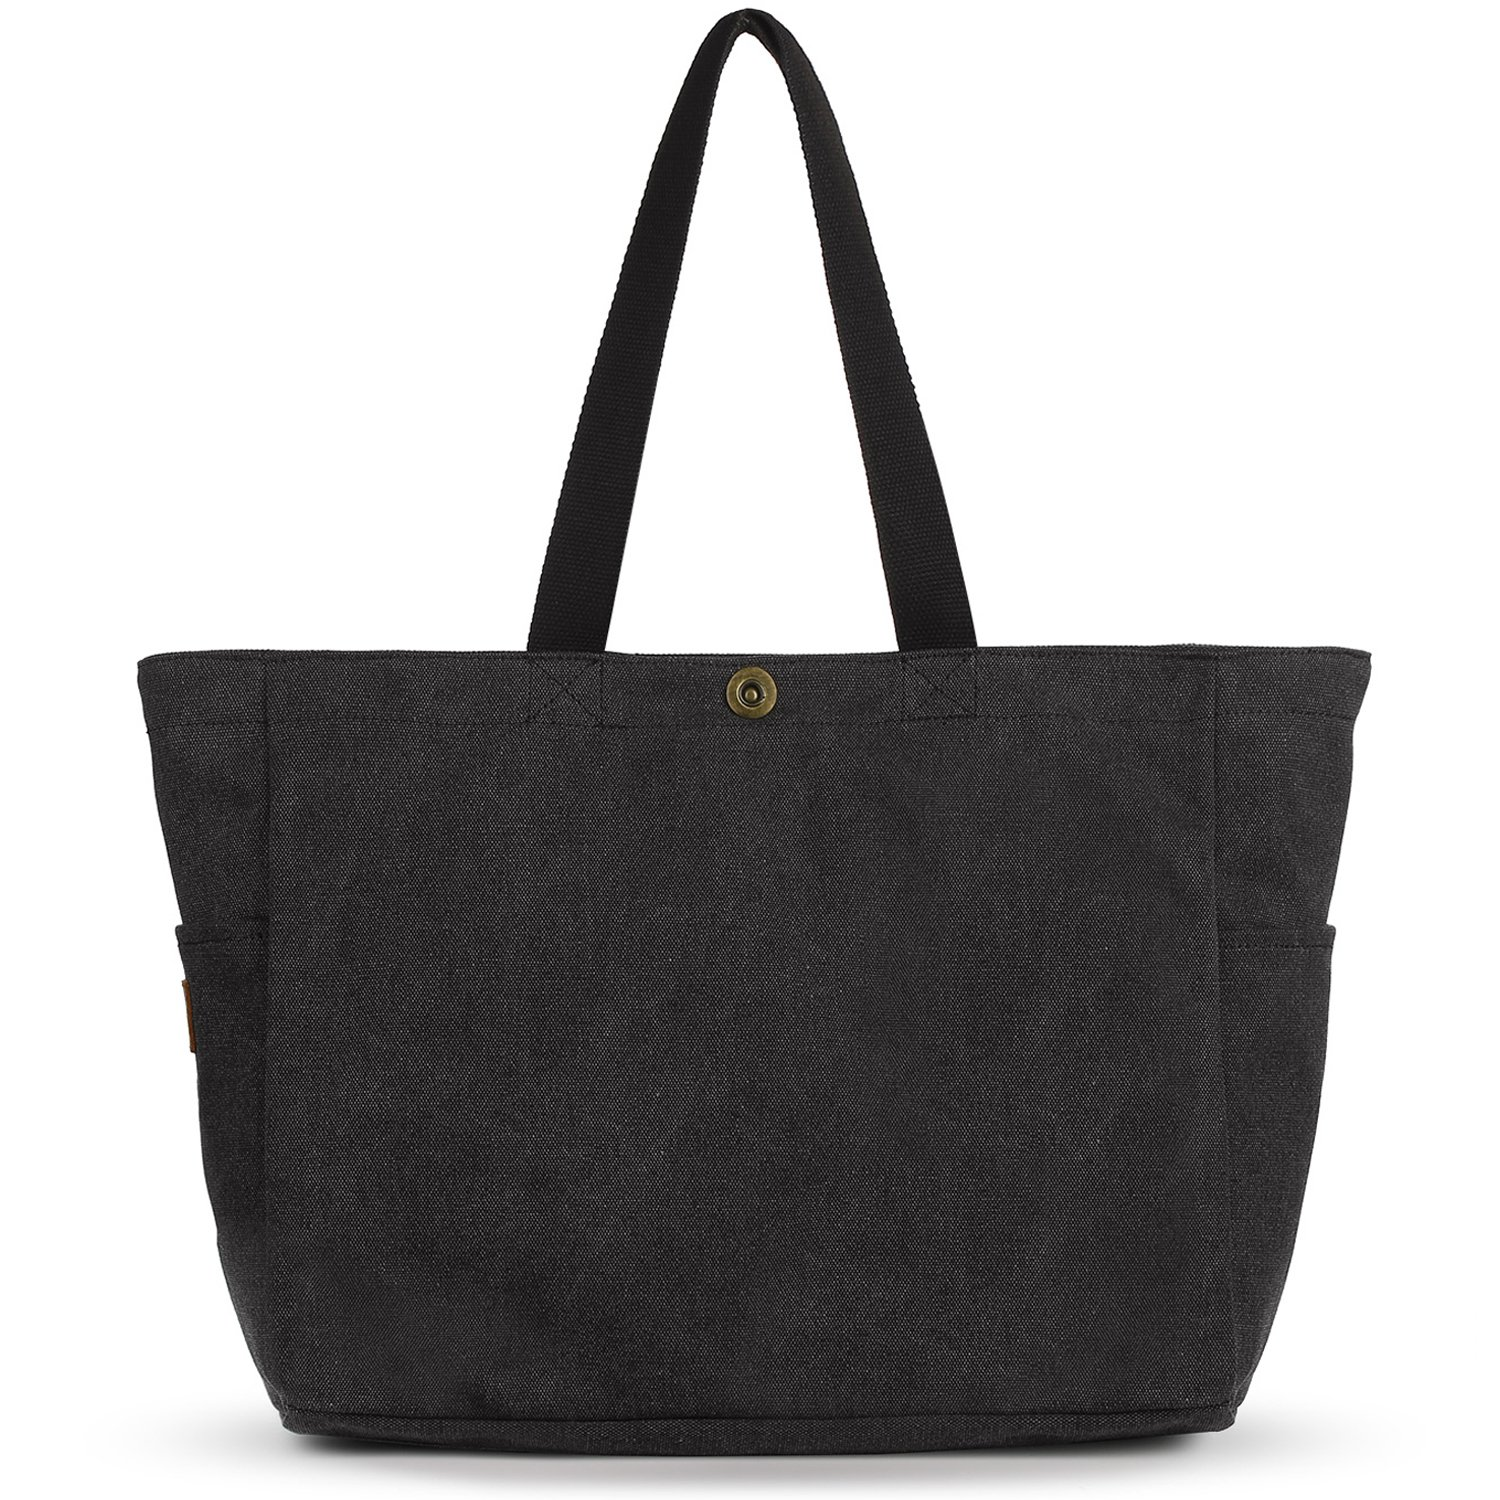 SMRITI Large Canvas Tote Bags for School Work Travel and Shopping - Dark Grey